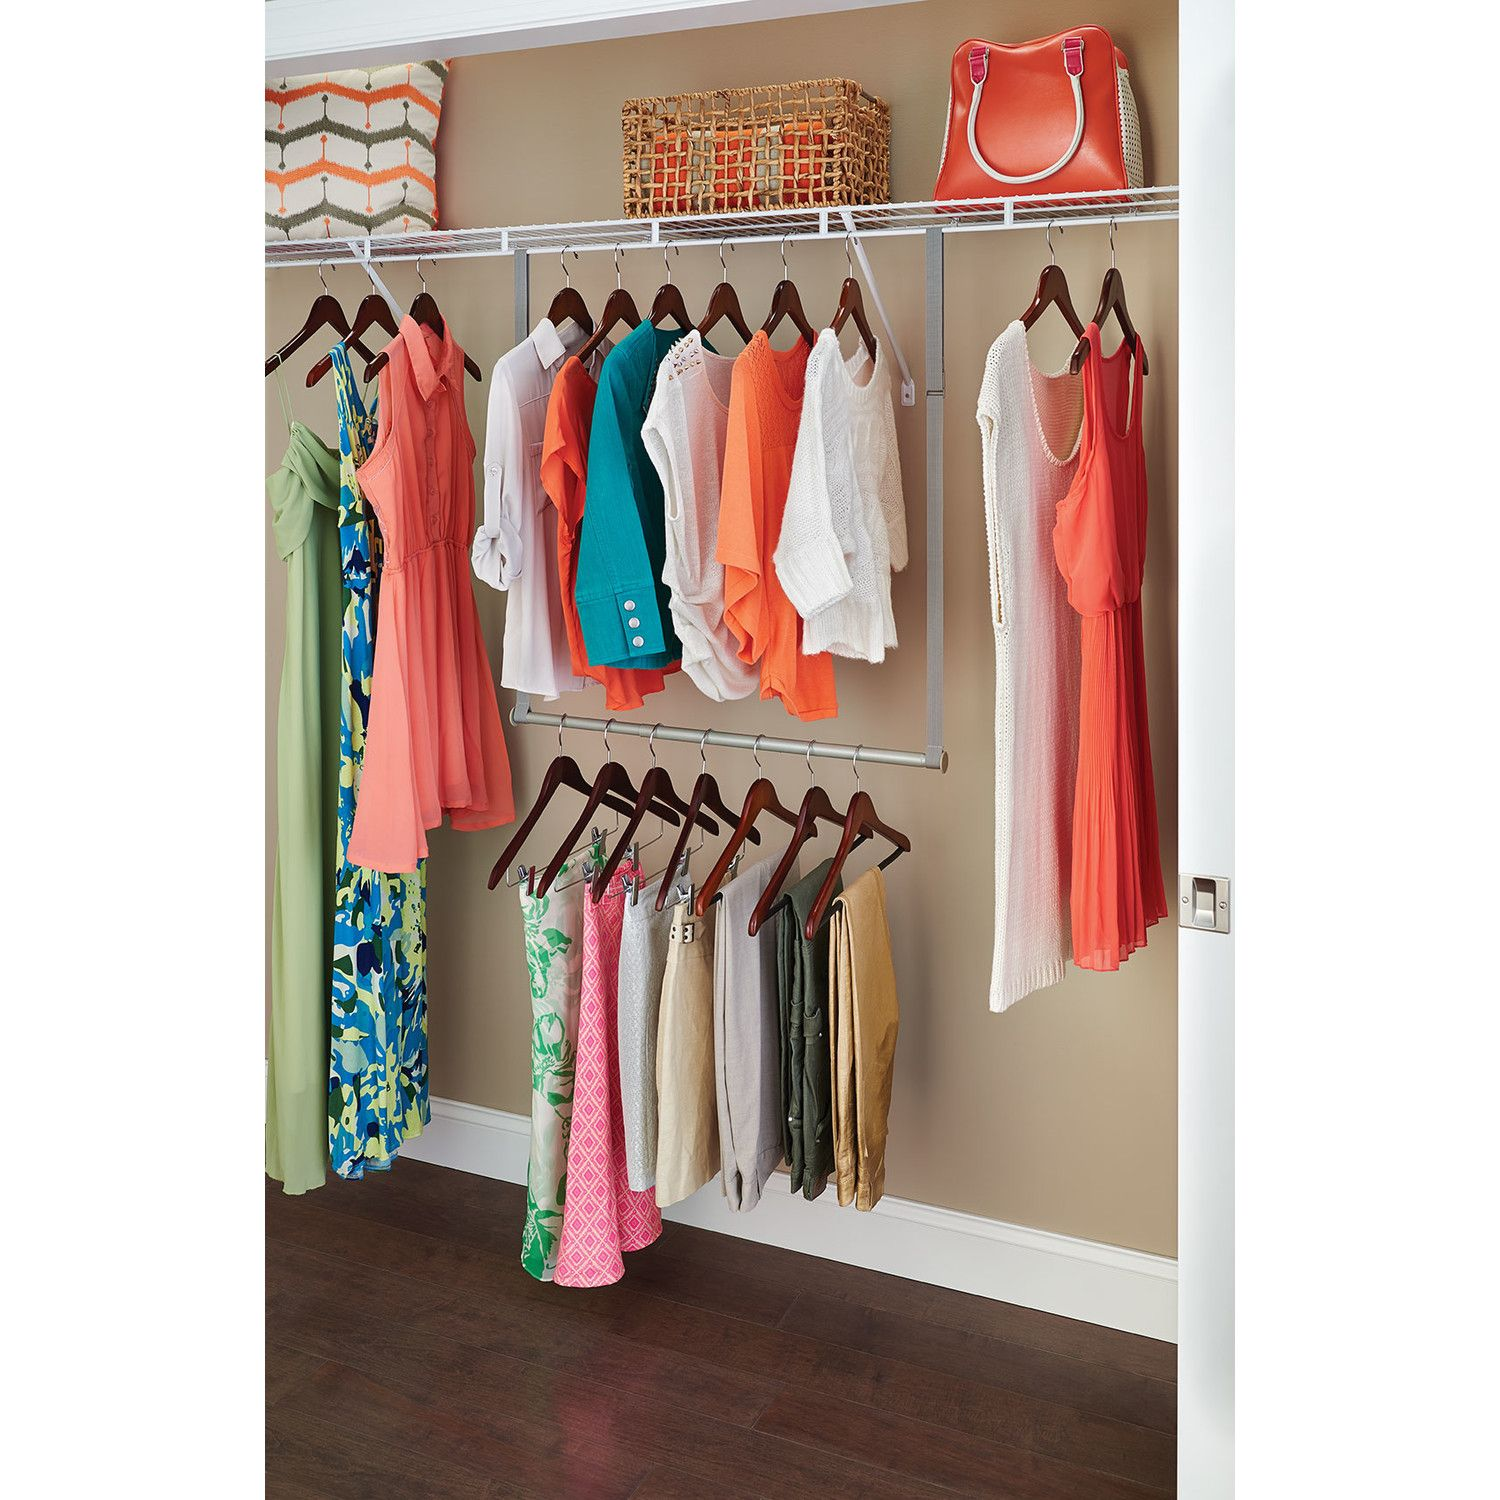 Double Closet Rod Height Features Double Hang Rod Can Retrofit Existing Closets To Add Two